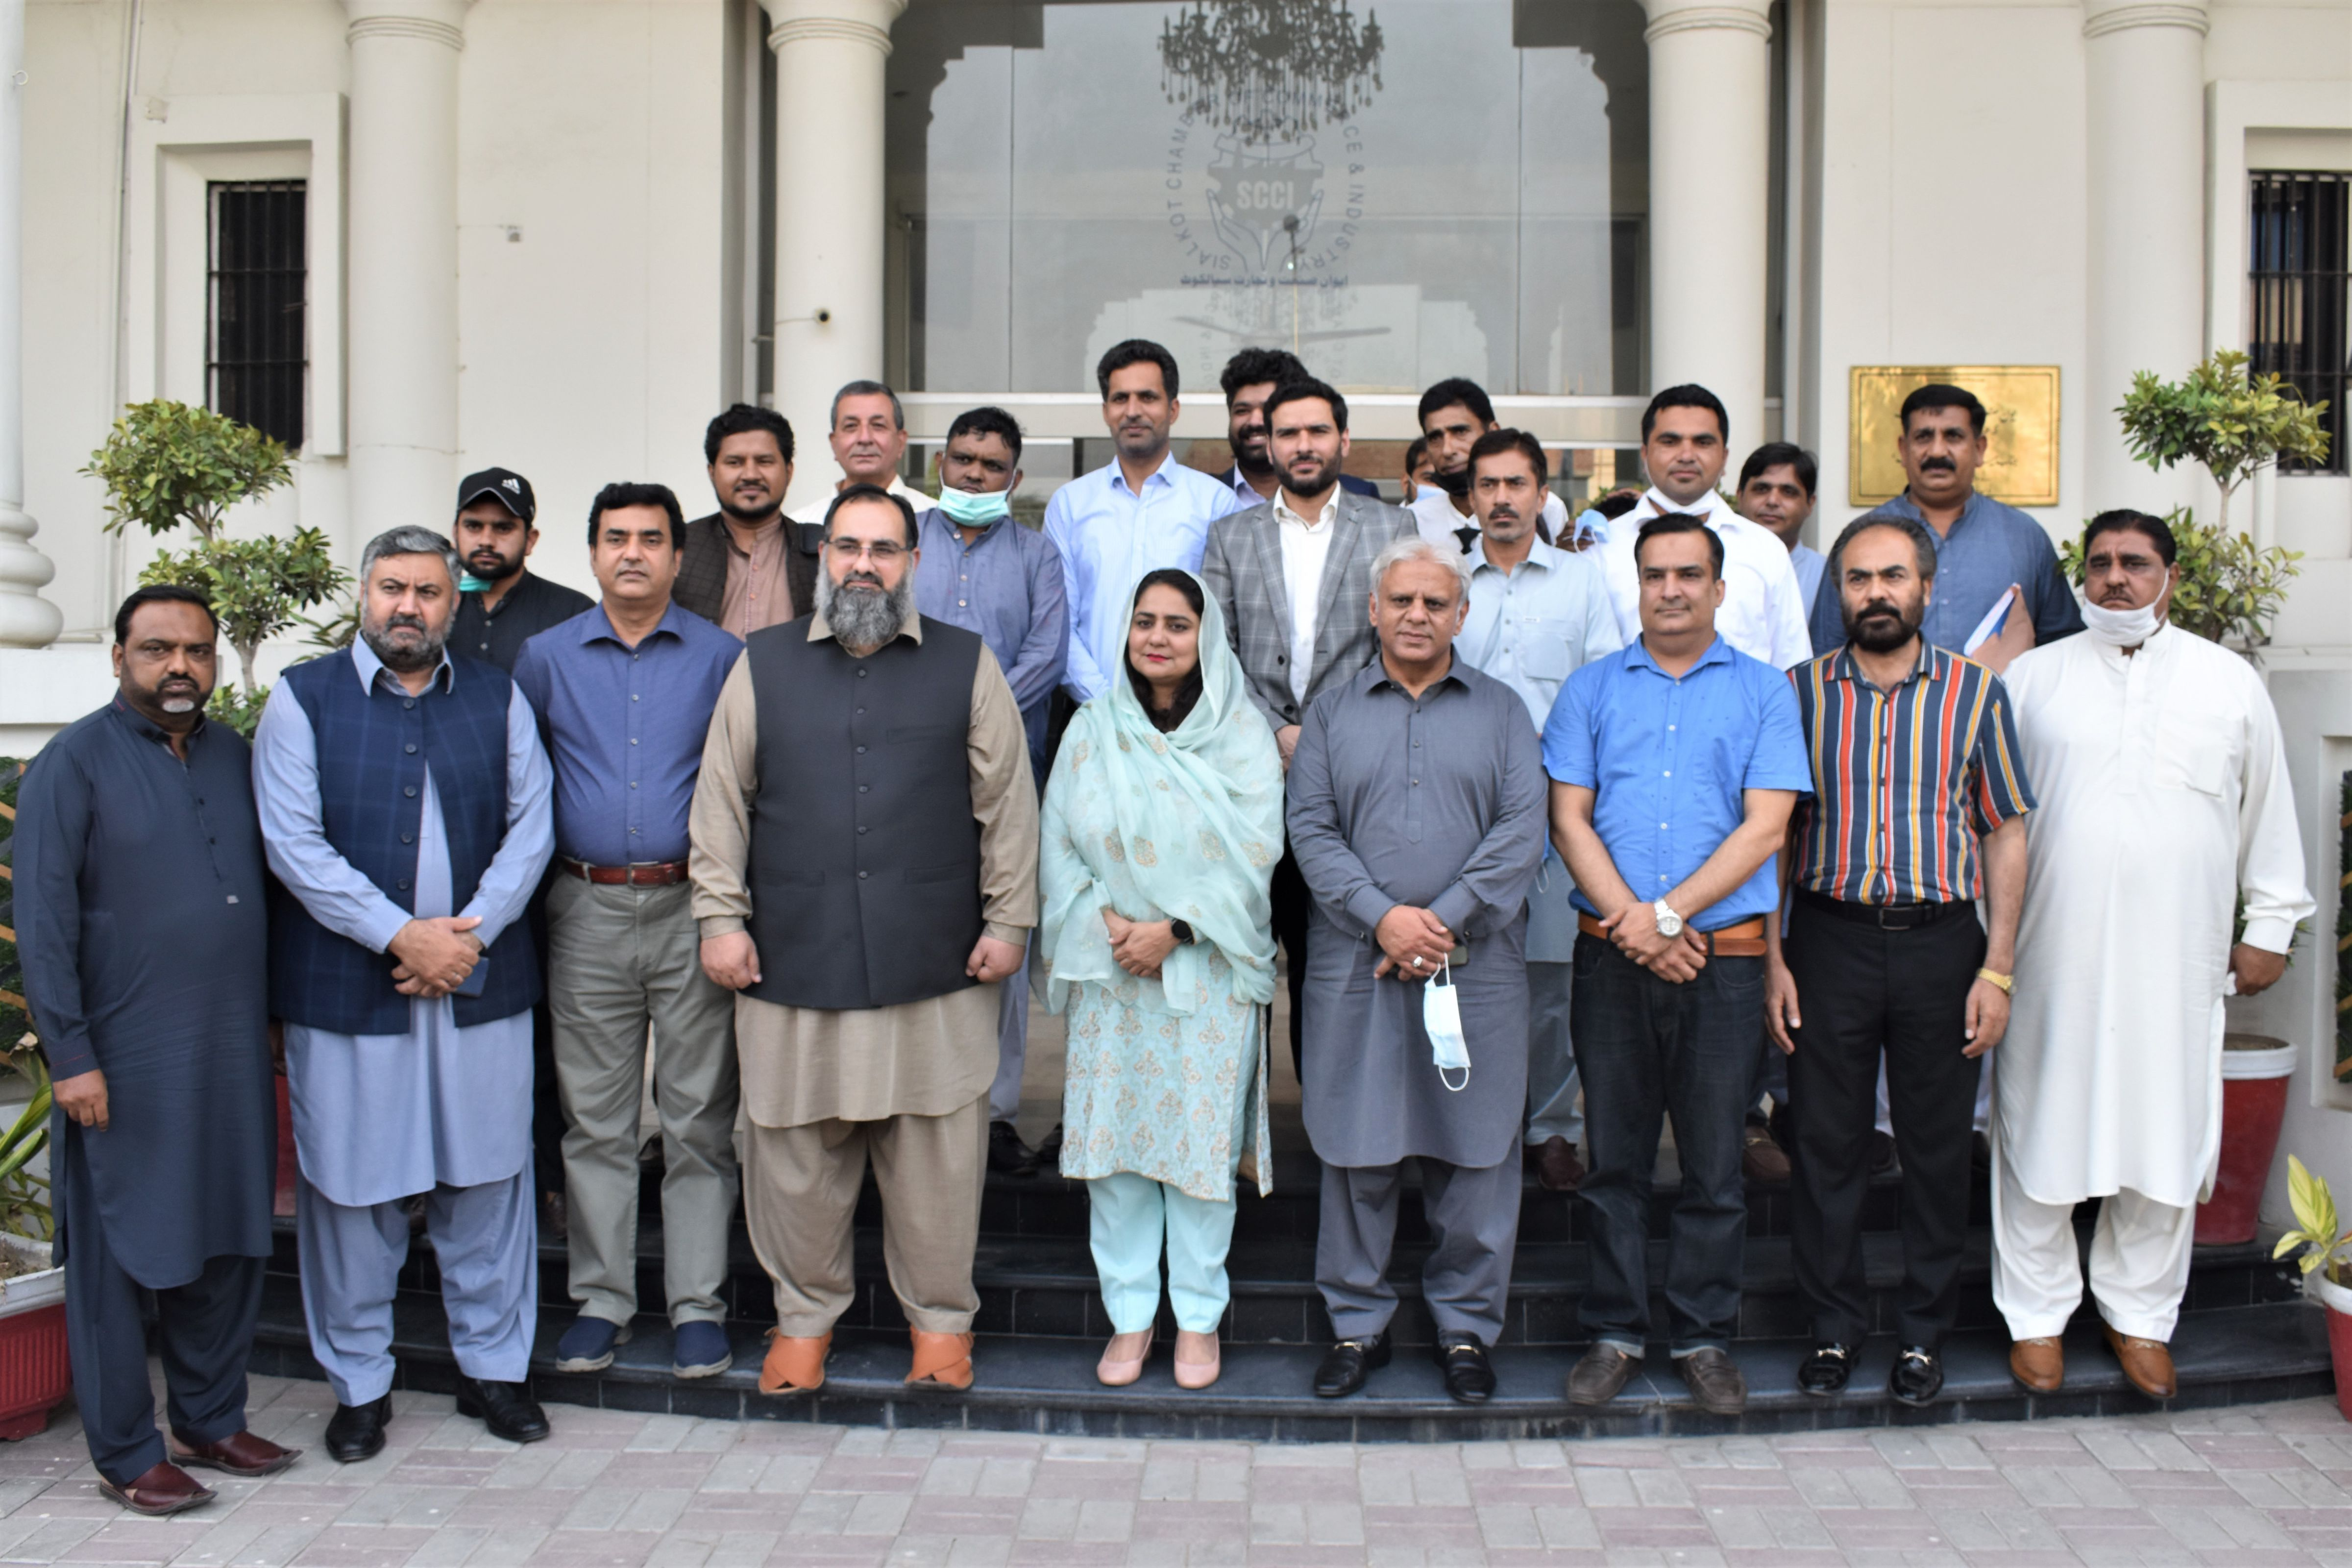 """On August 24, 2021, An awareness session on """"Benami Transactions (Prohibition) Act, 2017"""" was held at Sialkot Chamber of Commerce & Industry by Dr. Yasmeen Fatima, Commissioner Benami Zone, FBR with Mr. Khuram Aslam, Senior Vice President and Mr. Ansar Aziz Puri, Vice President, SCCI in Chair.  Executive Committee Members, SCCI and senior business community of Sialkot also participated in this session."""